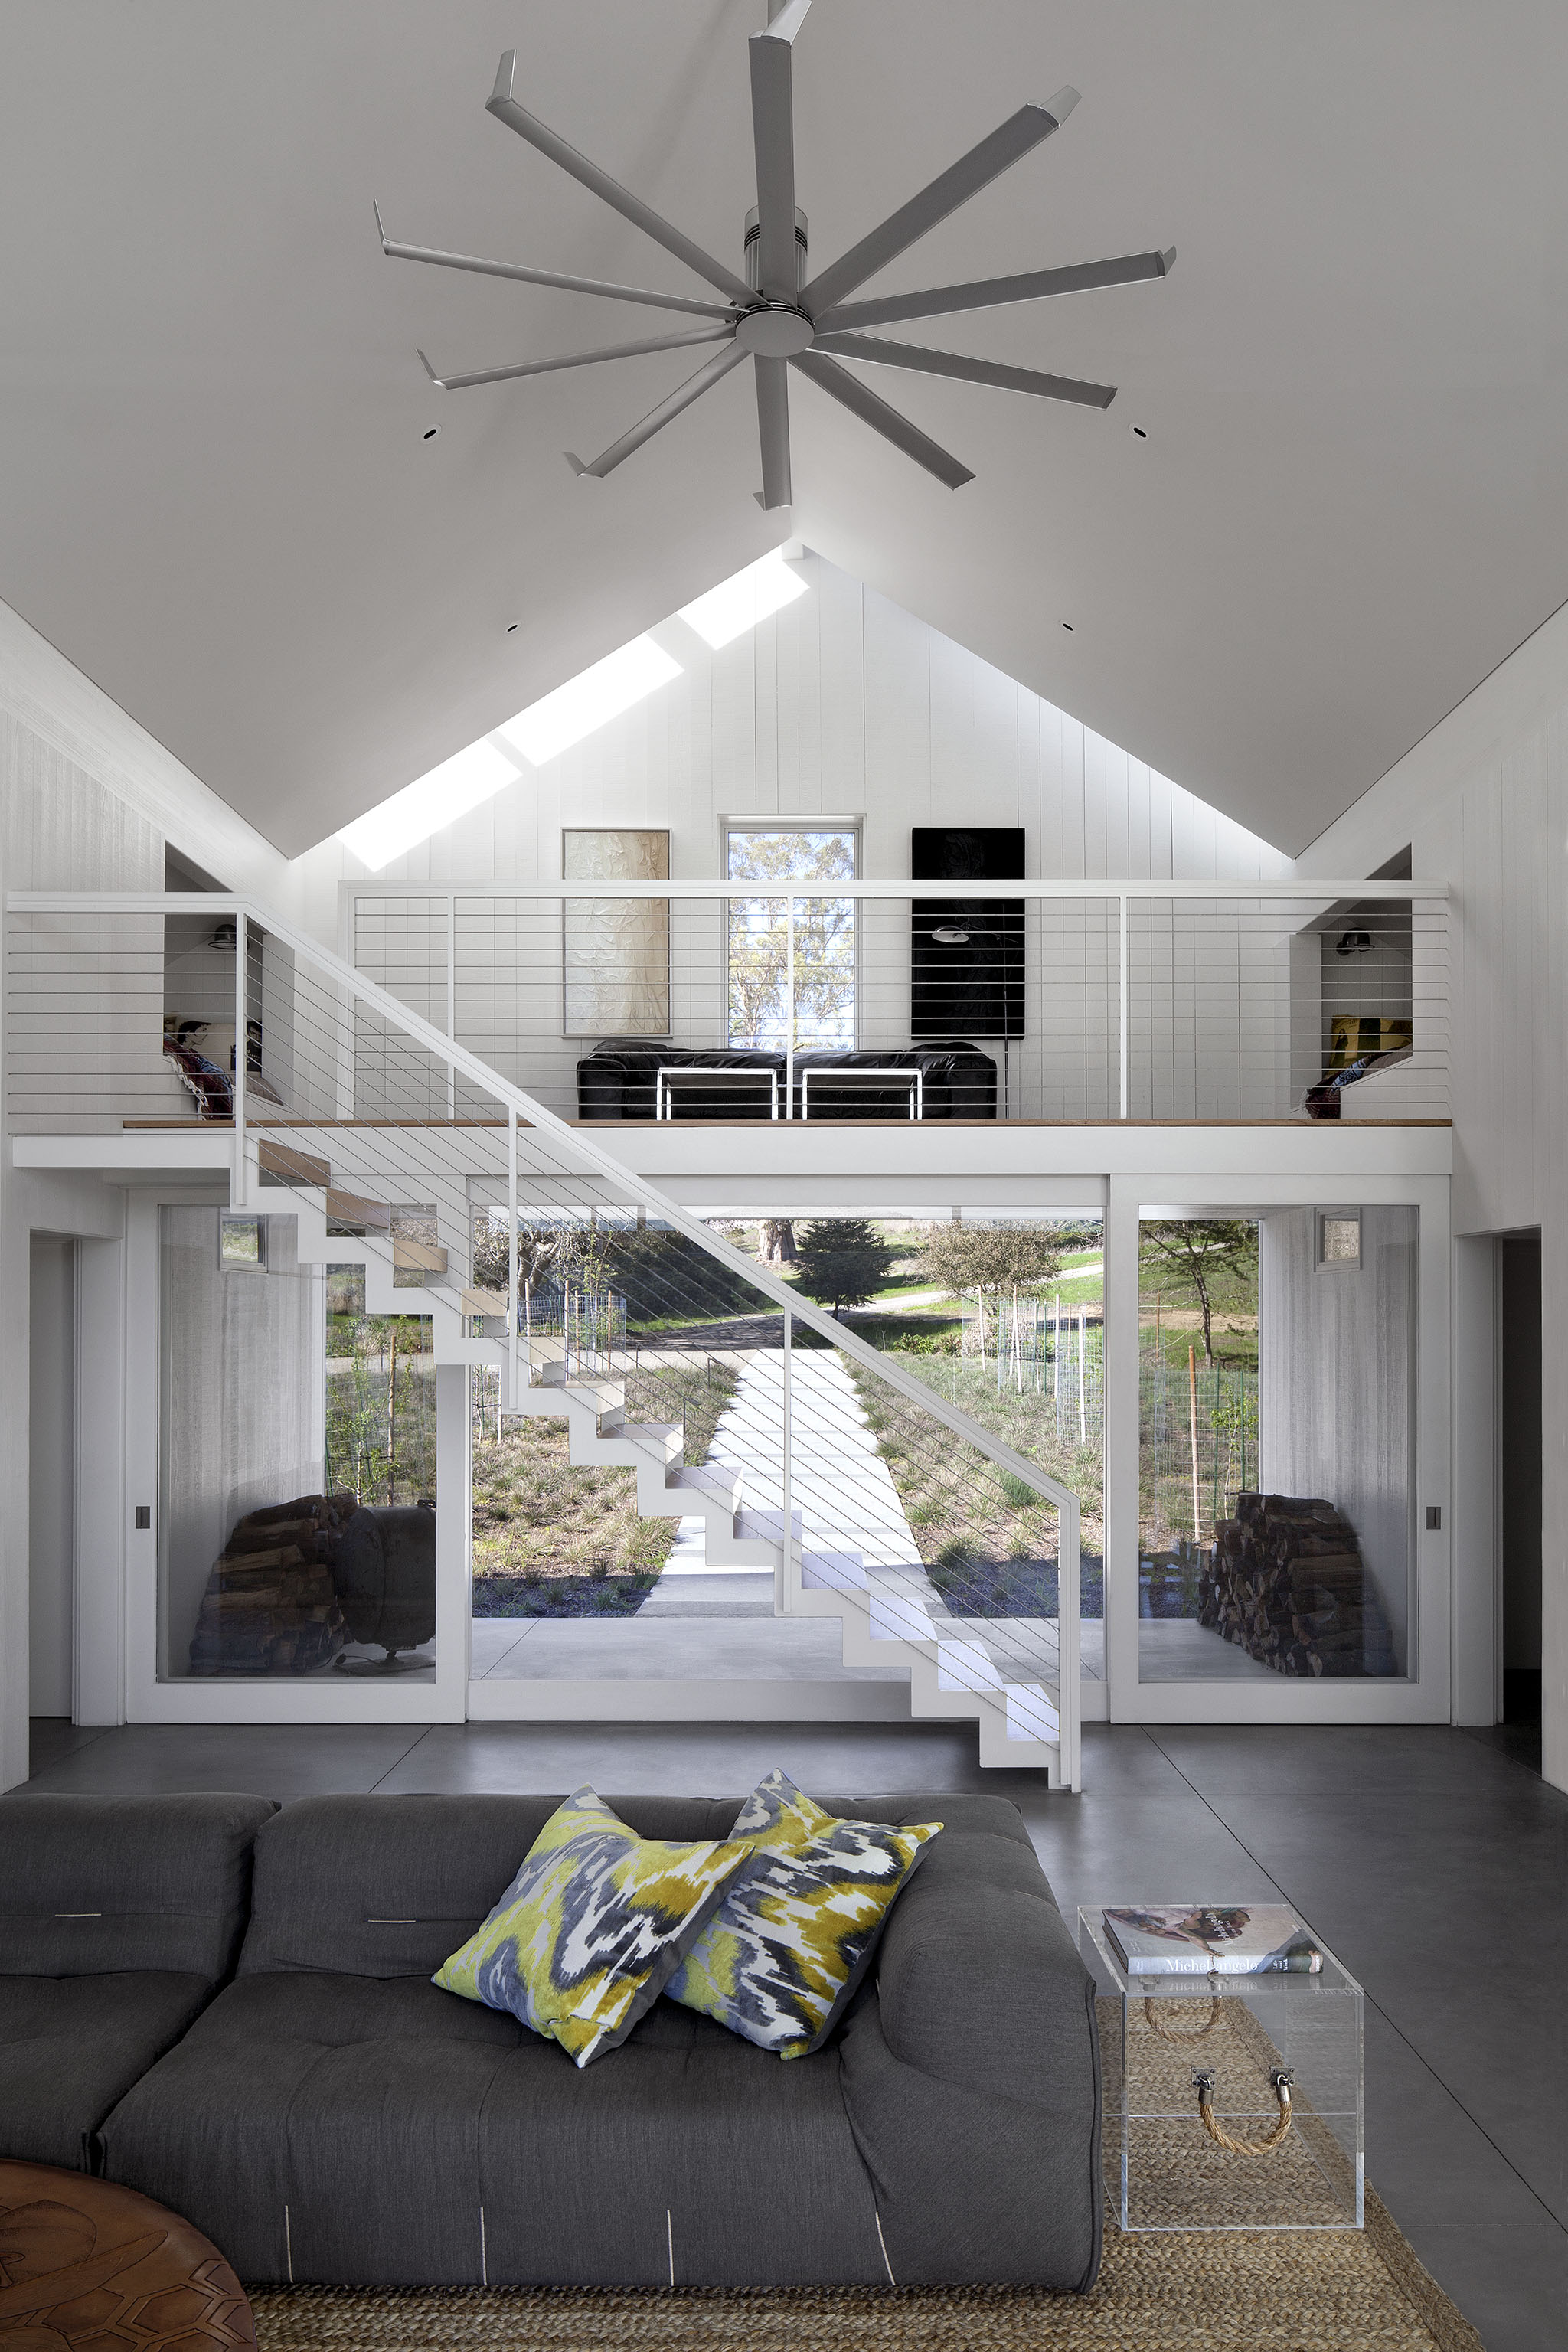 The two-story living room also holds this loft area above the doorway, with subtle skylights framed against the roof edge. A massive aluminum ceiling fan efficiently circulates air in the large space.